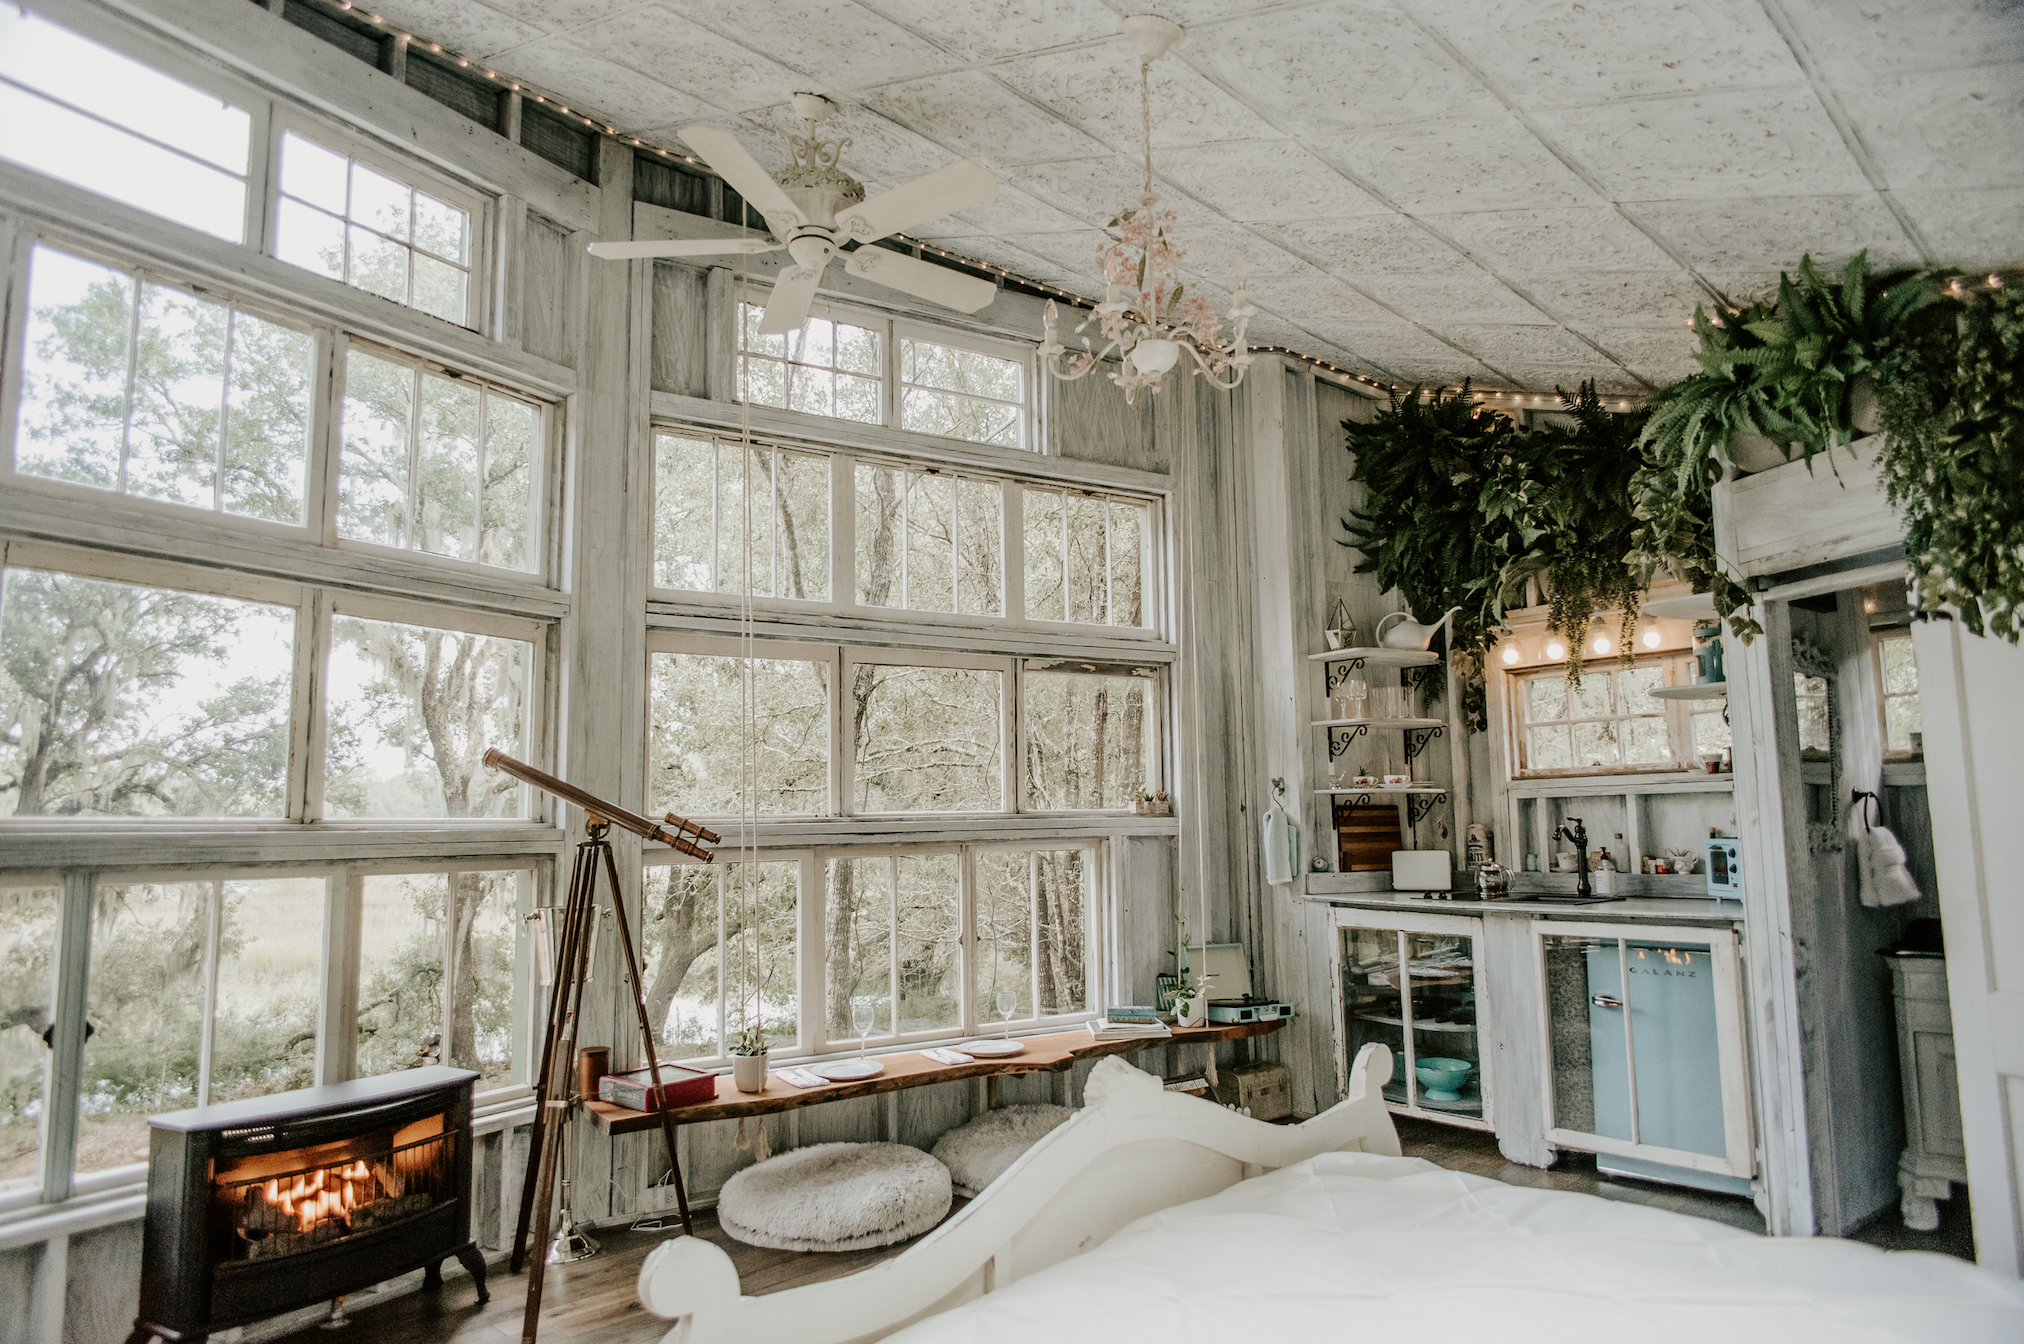 THE LIVING ROOM TREEHOUSE - Featured on Southern Charm & Us WeeklyPanoramic | Spirit-lifting | WaterfrontPerfect for celebrating life, love, & happiness.CHARLESTON, SC